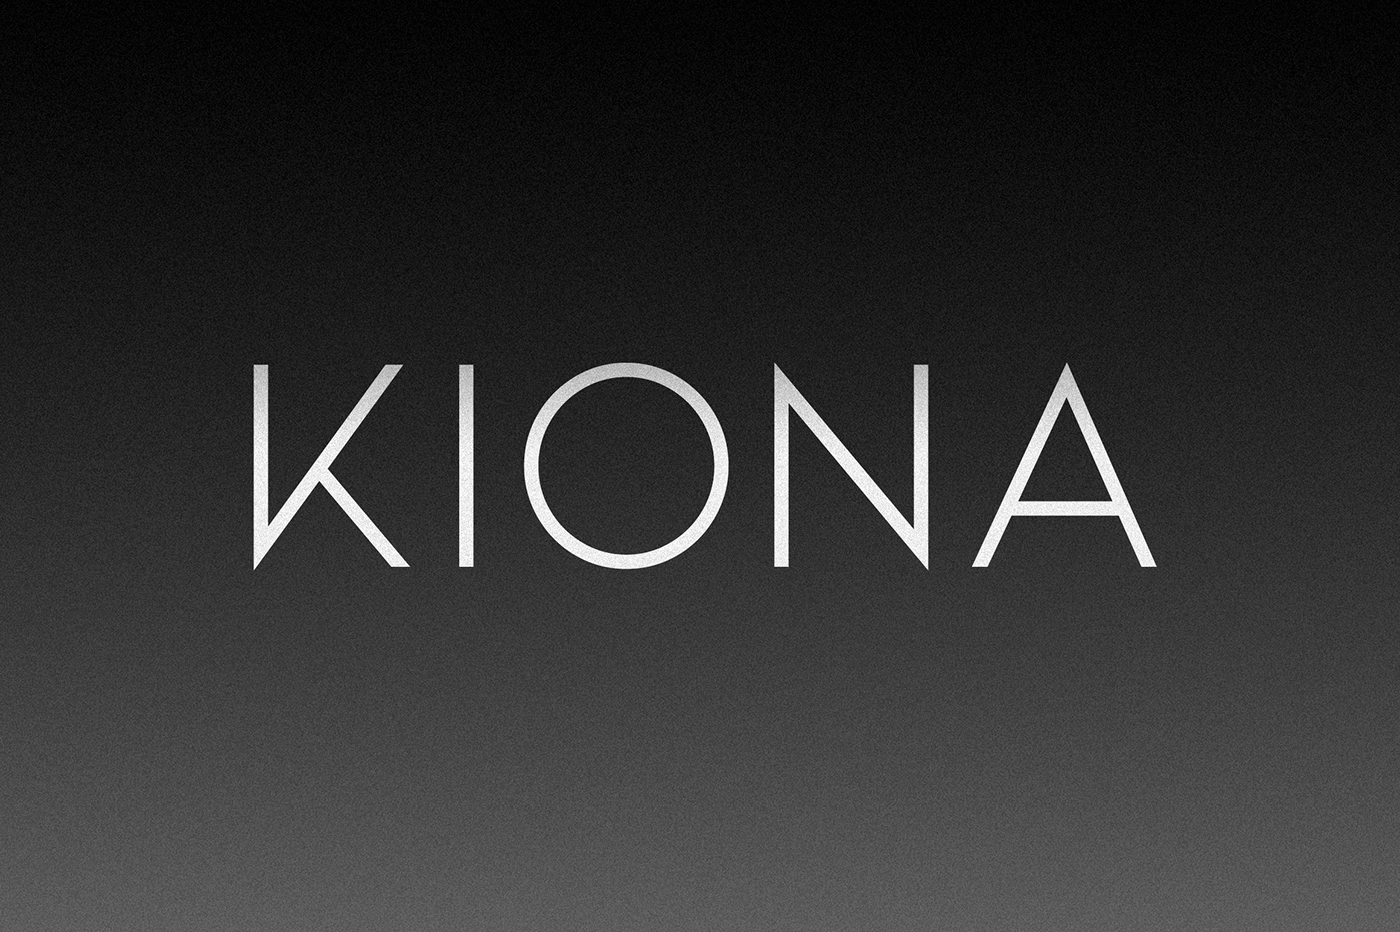 KIONA - Font Family (Free Download) on Behance